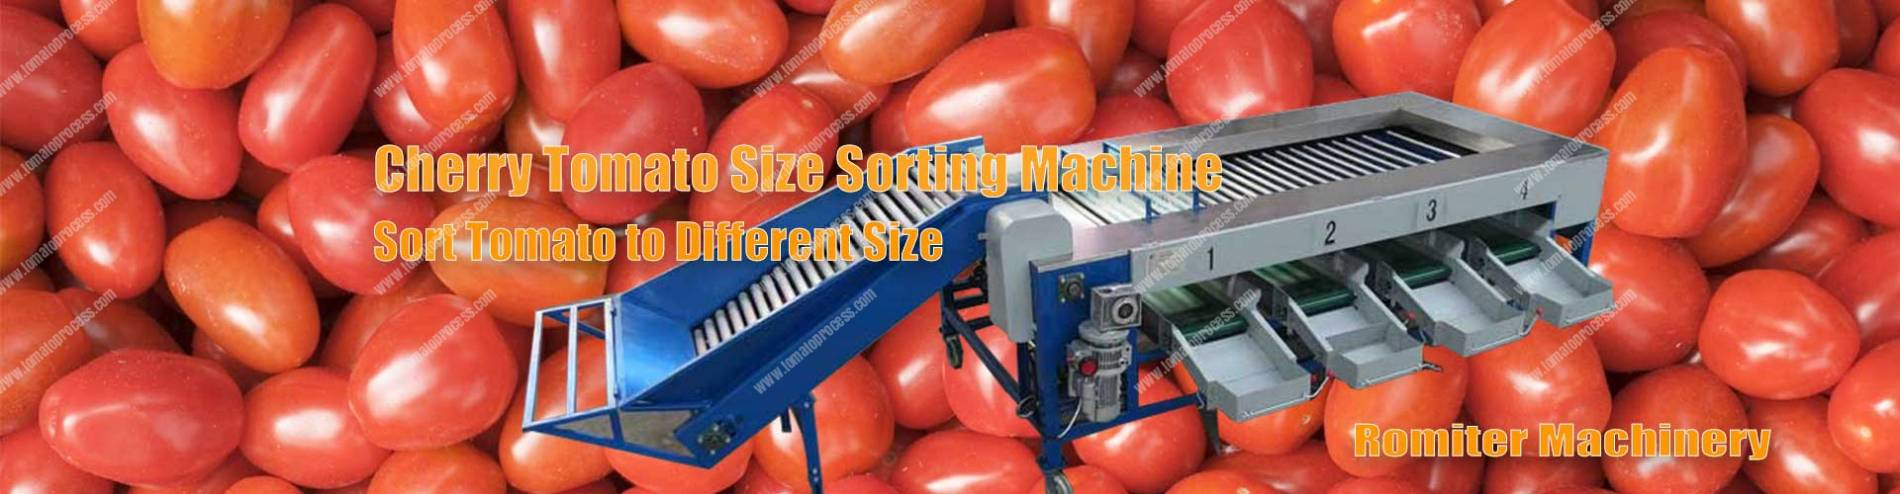 Banner01-Cherry-Tomato-Size-Sorting-Grading-Machine-Supplier-Manufacture